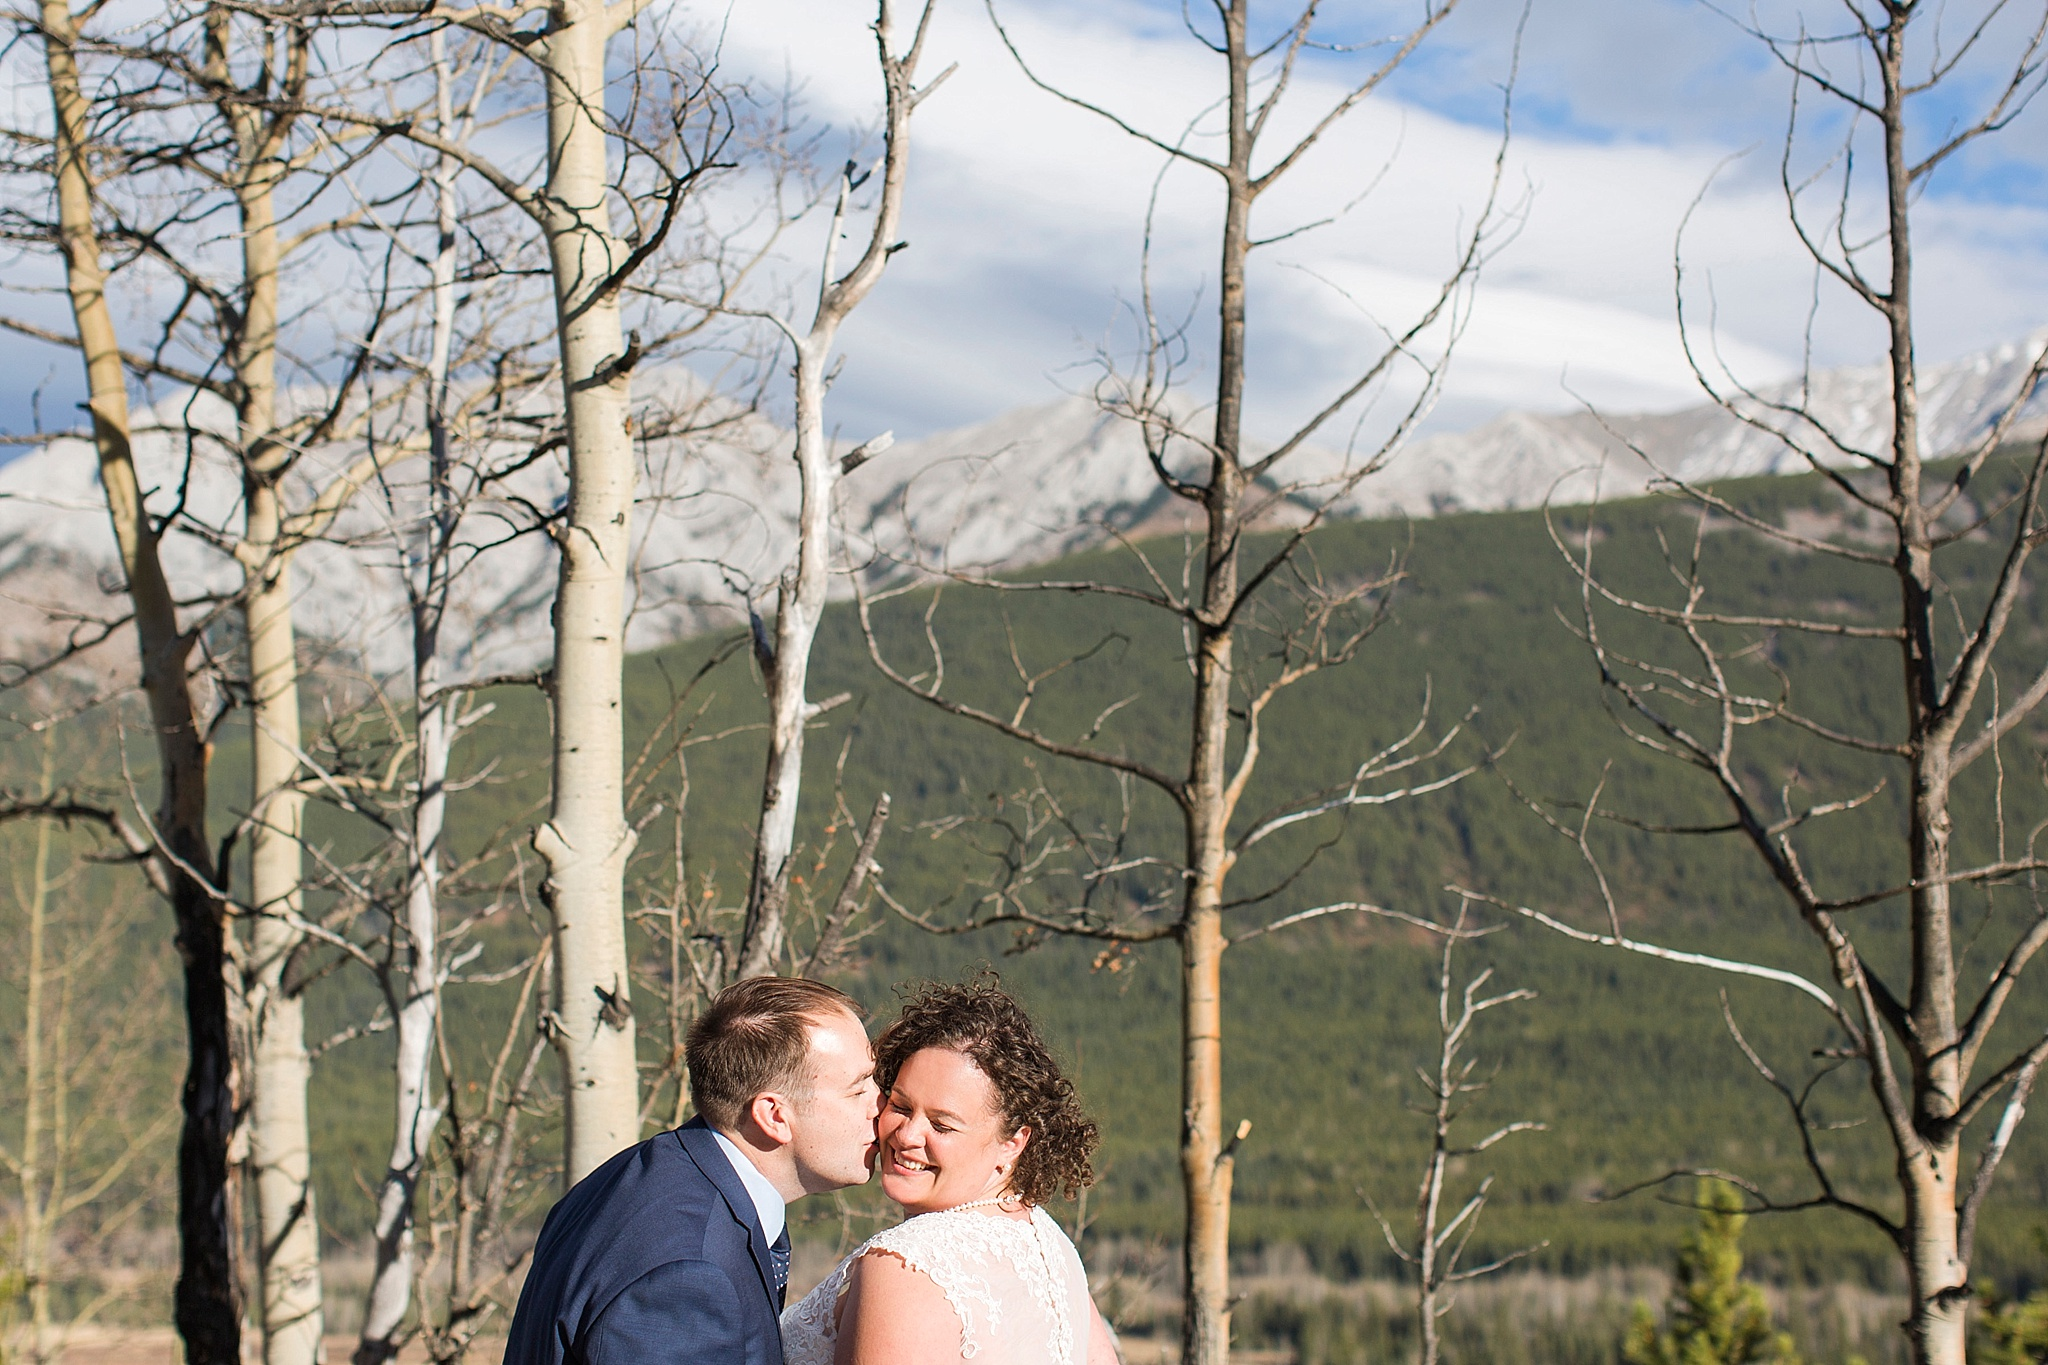 Delta-kananaskis-wedding059.JPG